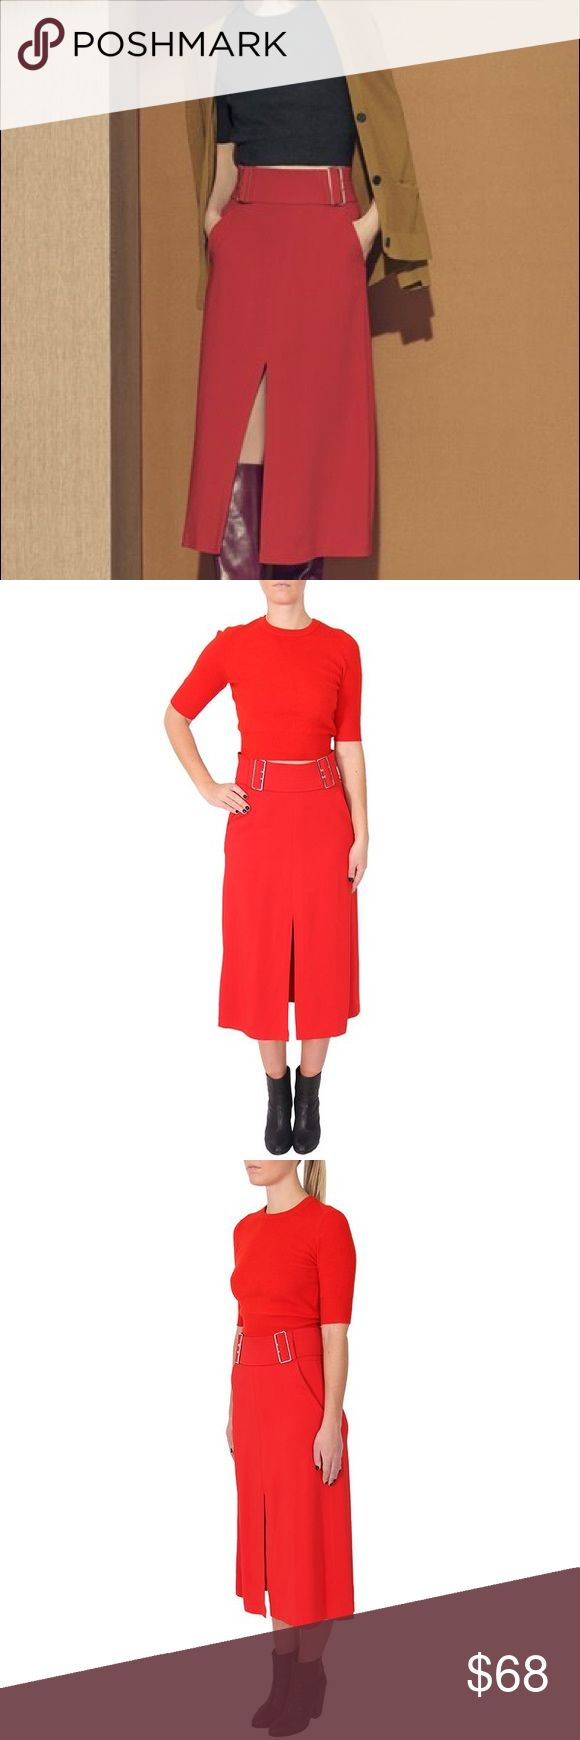 """NWT A.L.C BAKER MIDI SKIRT New with tags, A.L.C """"Baker"""" midi skirt. Gorgeous red color, perfect for the FALL! :) Mid-weight crepe lends fluid drape to this ladylike A.L.C. skirt. Buckles at the wide waist create a belted effect, and a long center slit relaxes the hem. Slant hip pockets. Hidden back zip. Unlined.   Dry clean Fits true to size A.L.C. Skirts"""